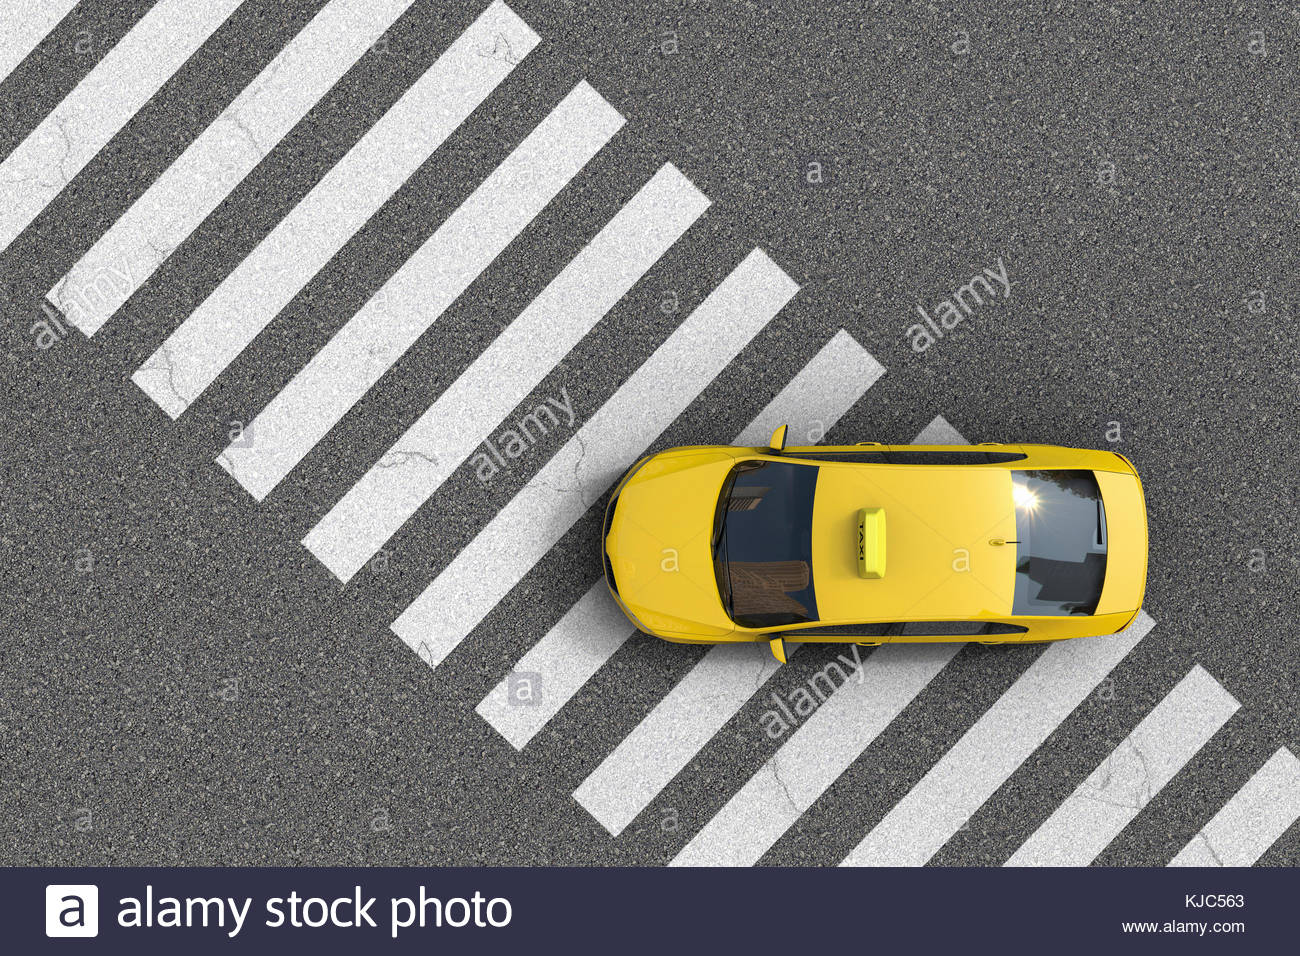 Overhead view of a yellow taxi over a pedestrian crossing - Stock Image